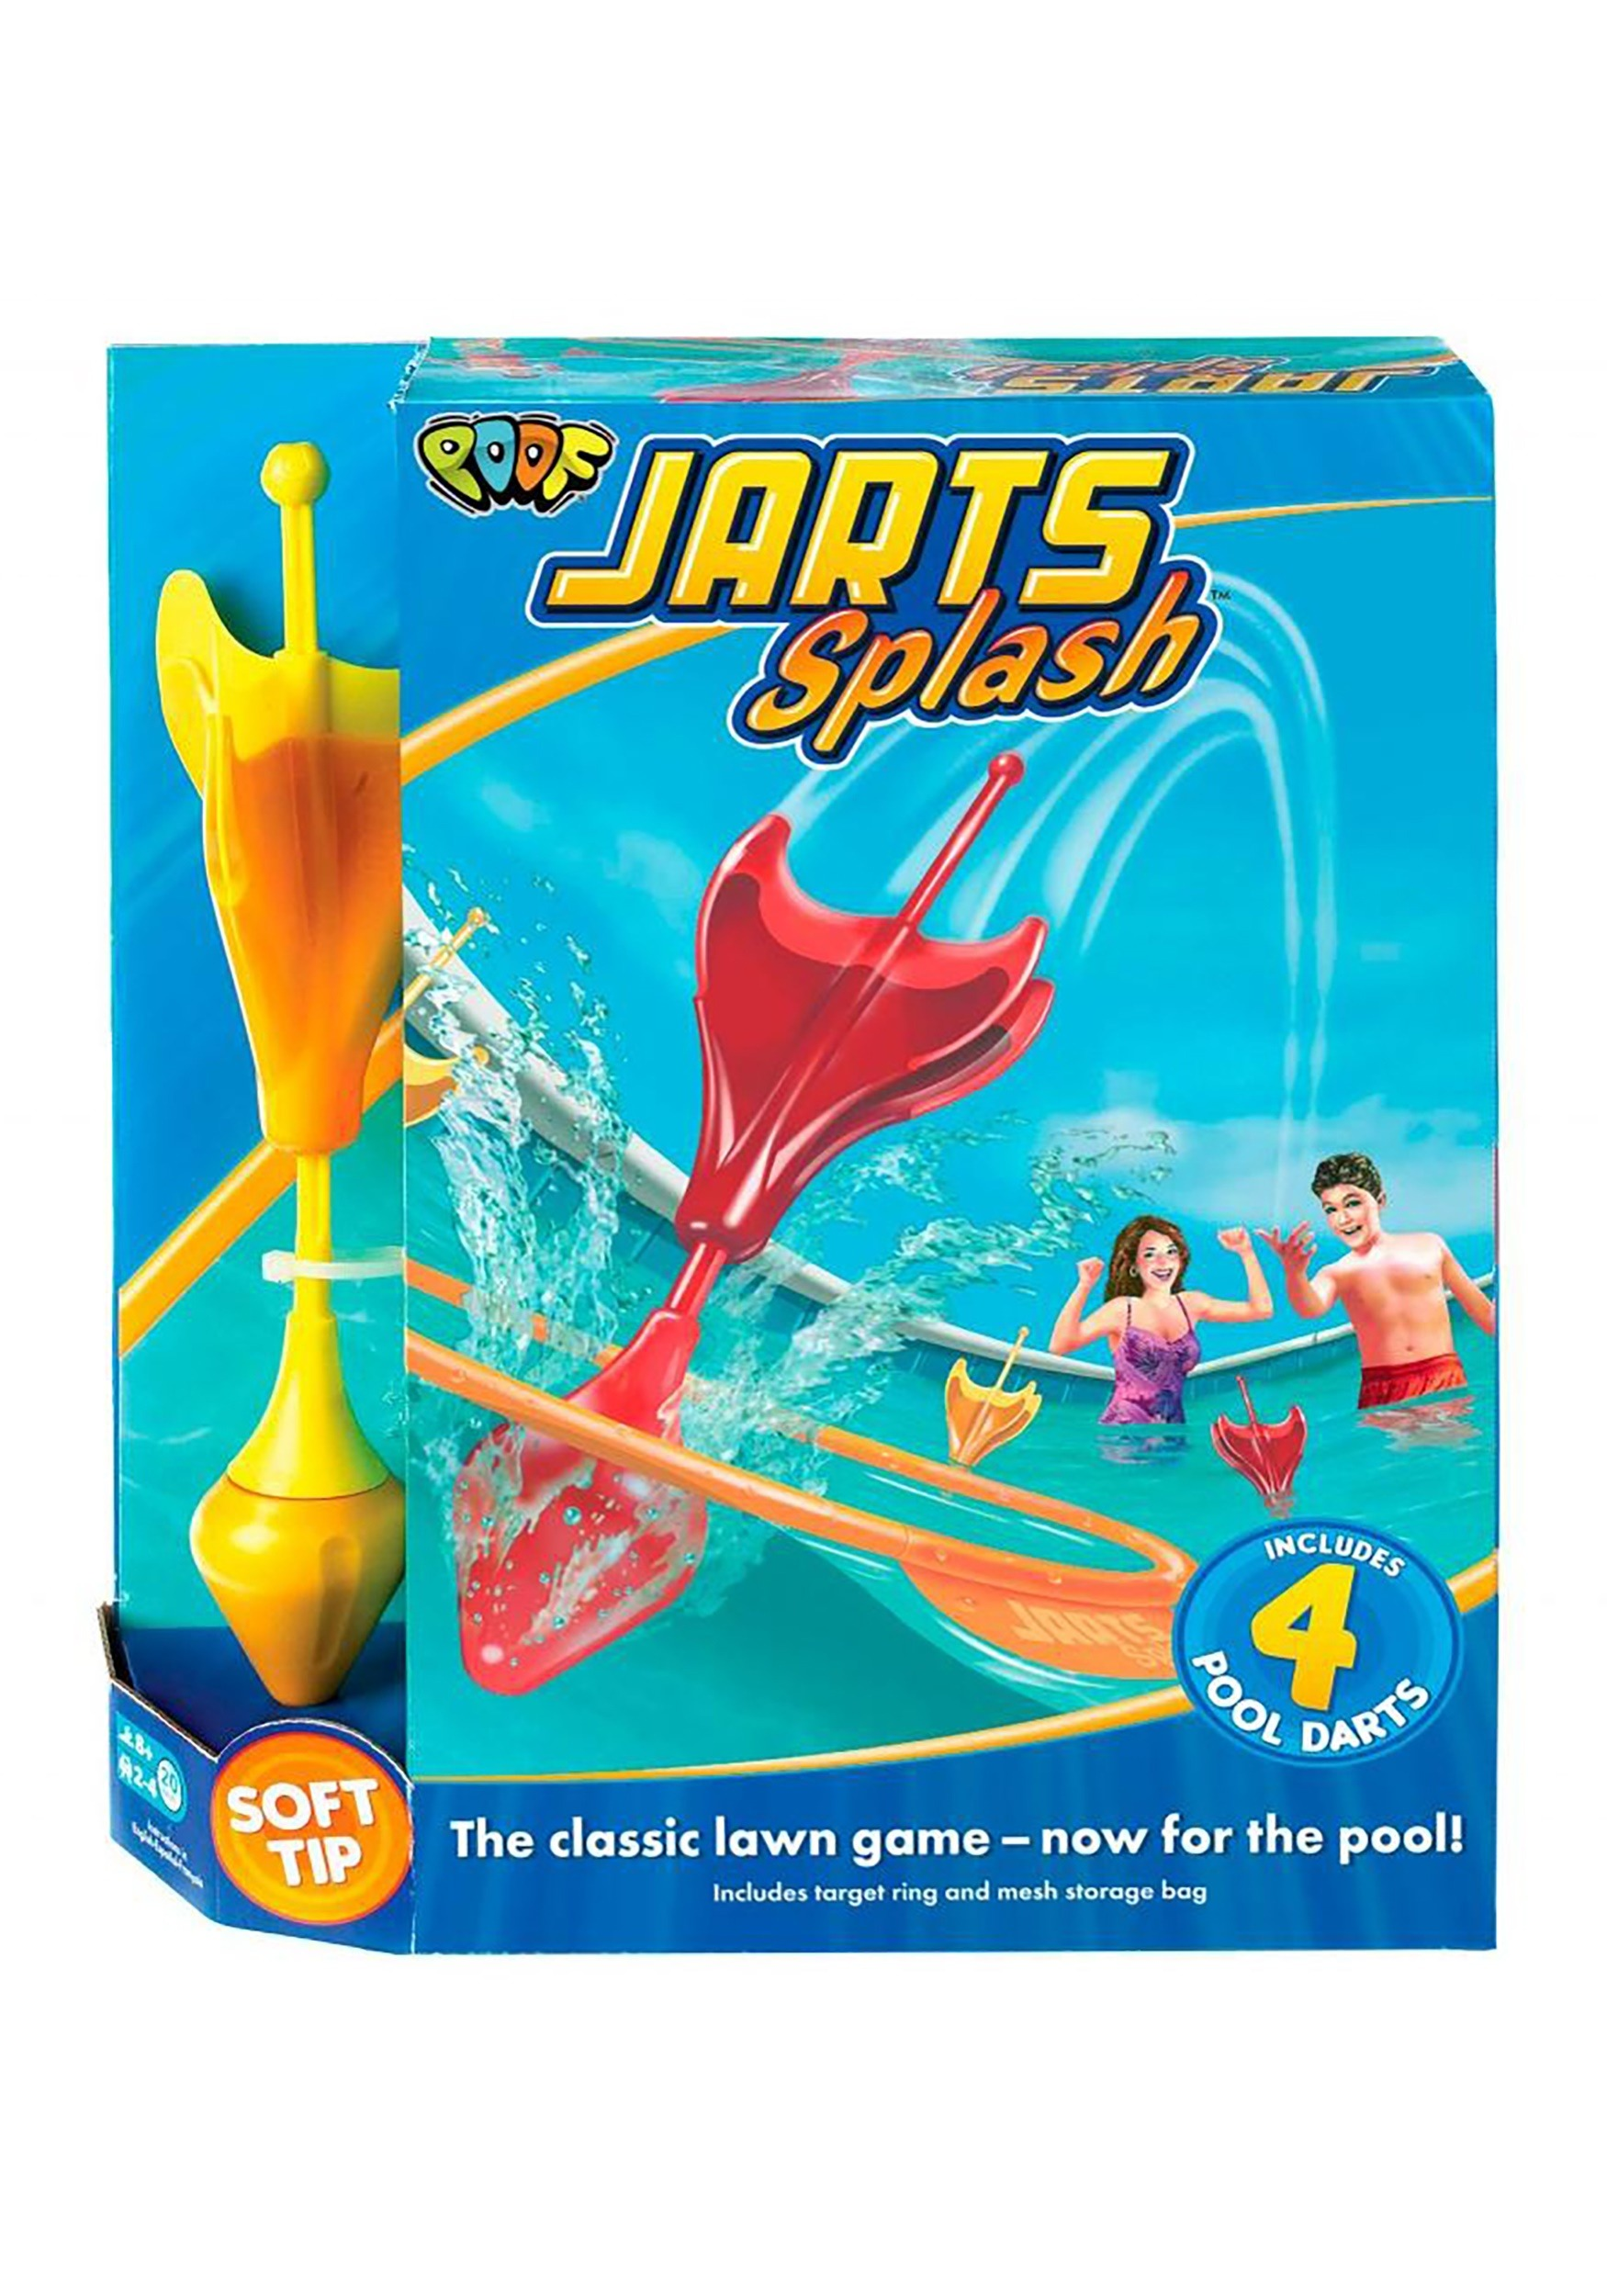 Jarts_Splash_Game